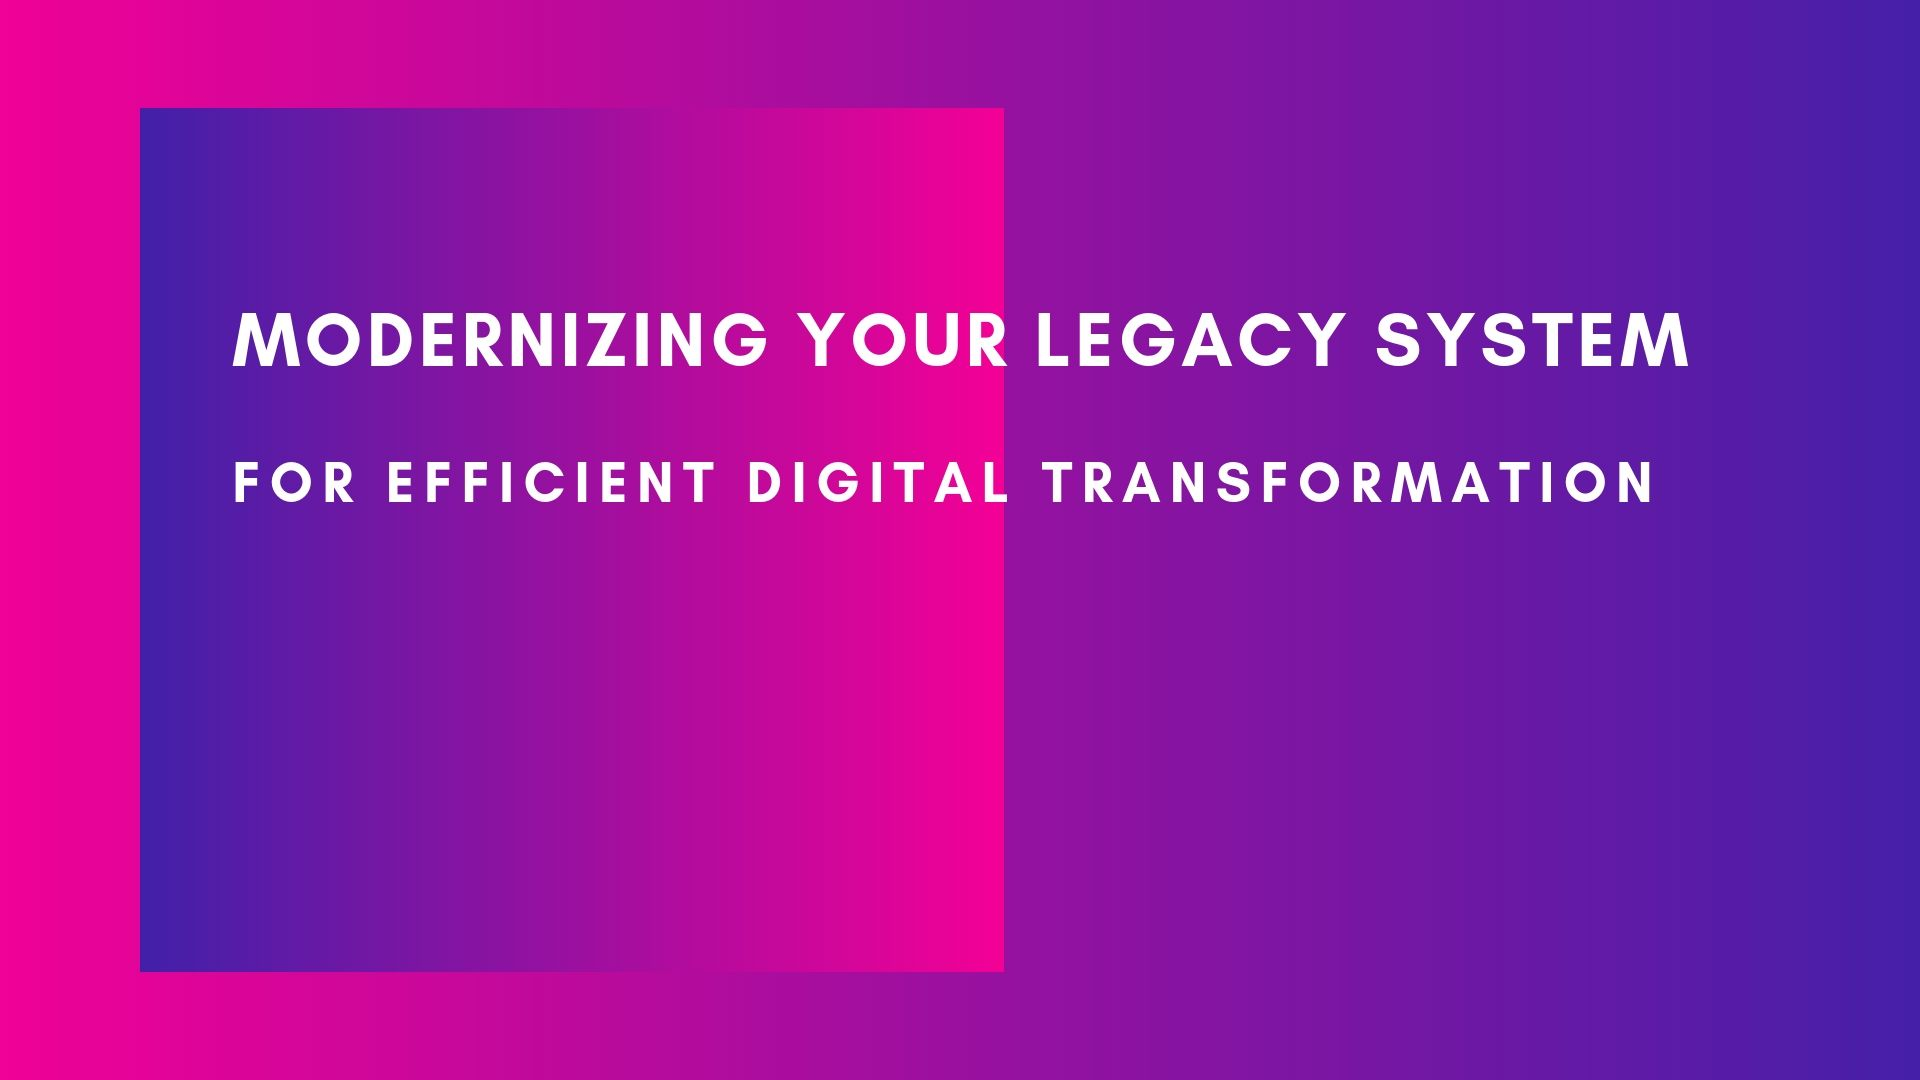 Modernizing your legacy system for efficient digital transformation